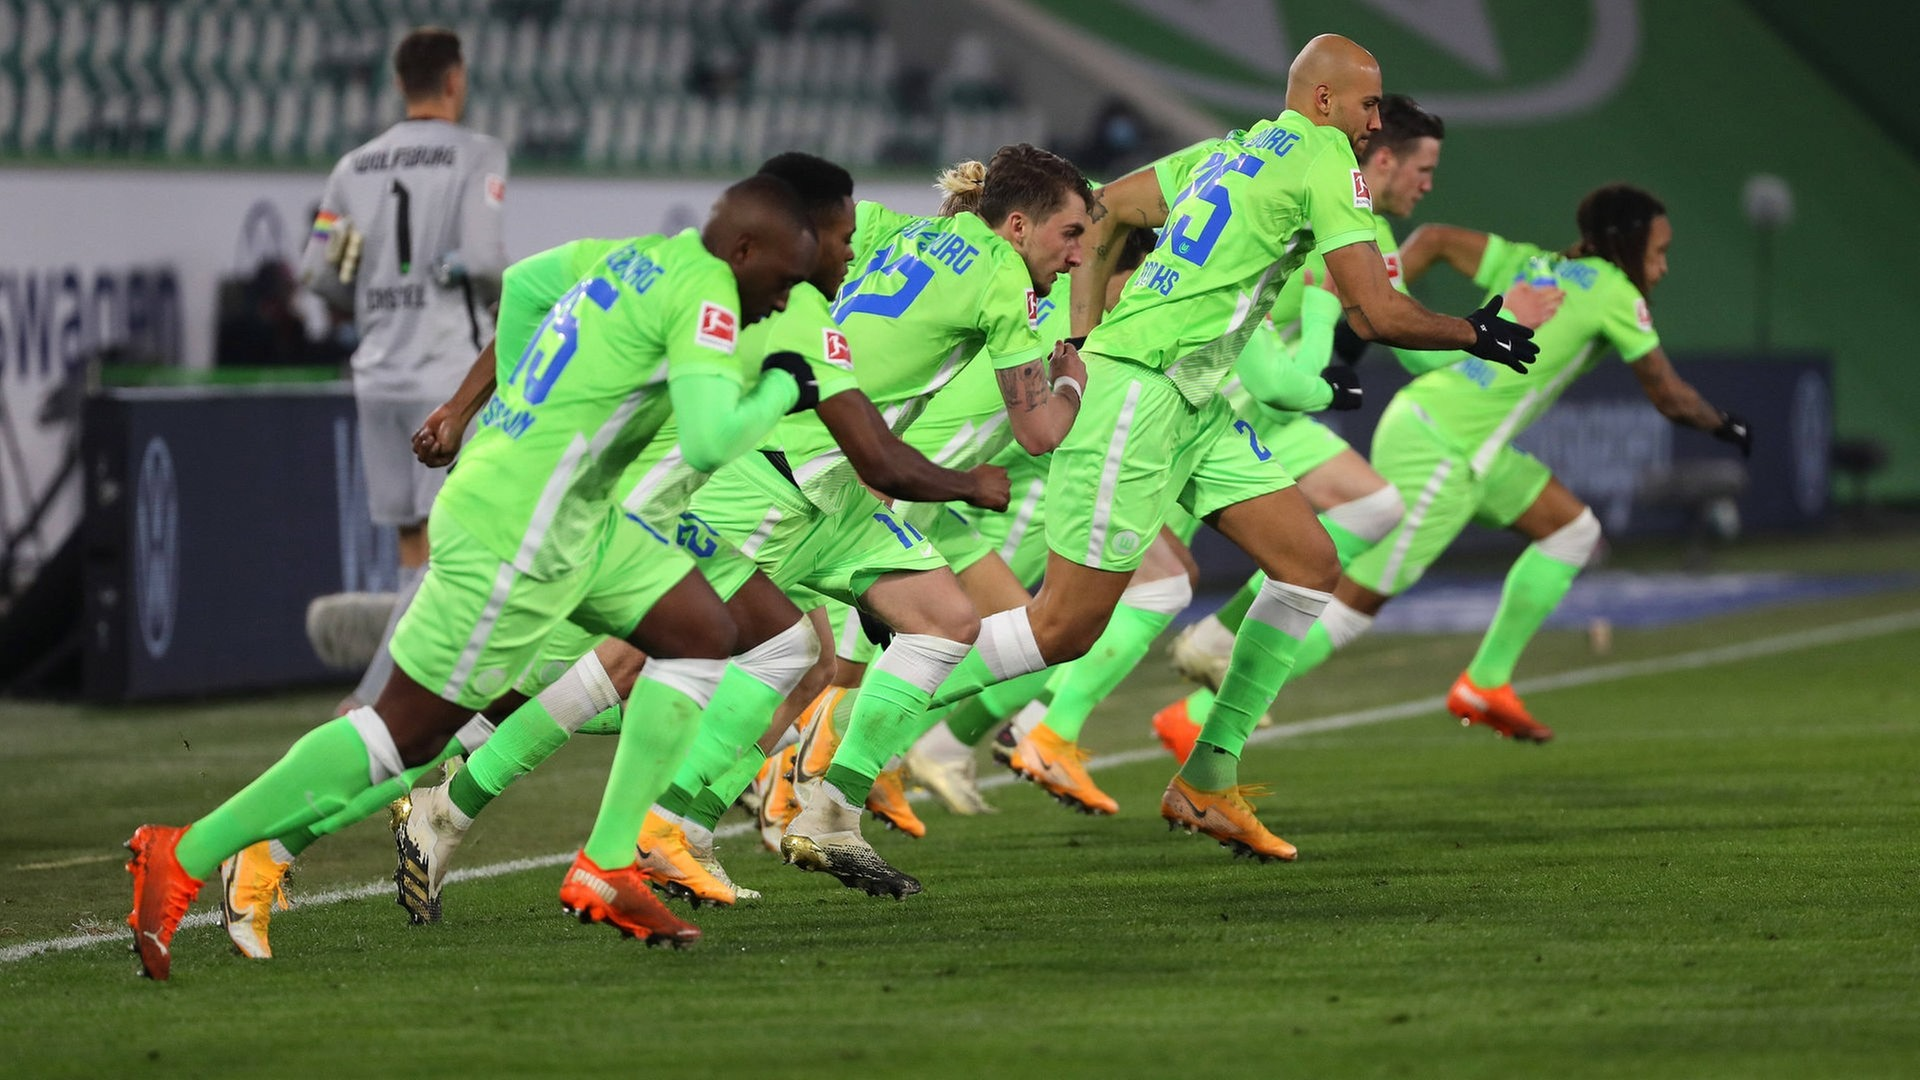 Wolfsburg's unbeaten run ended with defeat to the champions last Wednesday